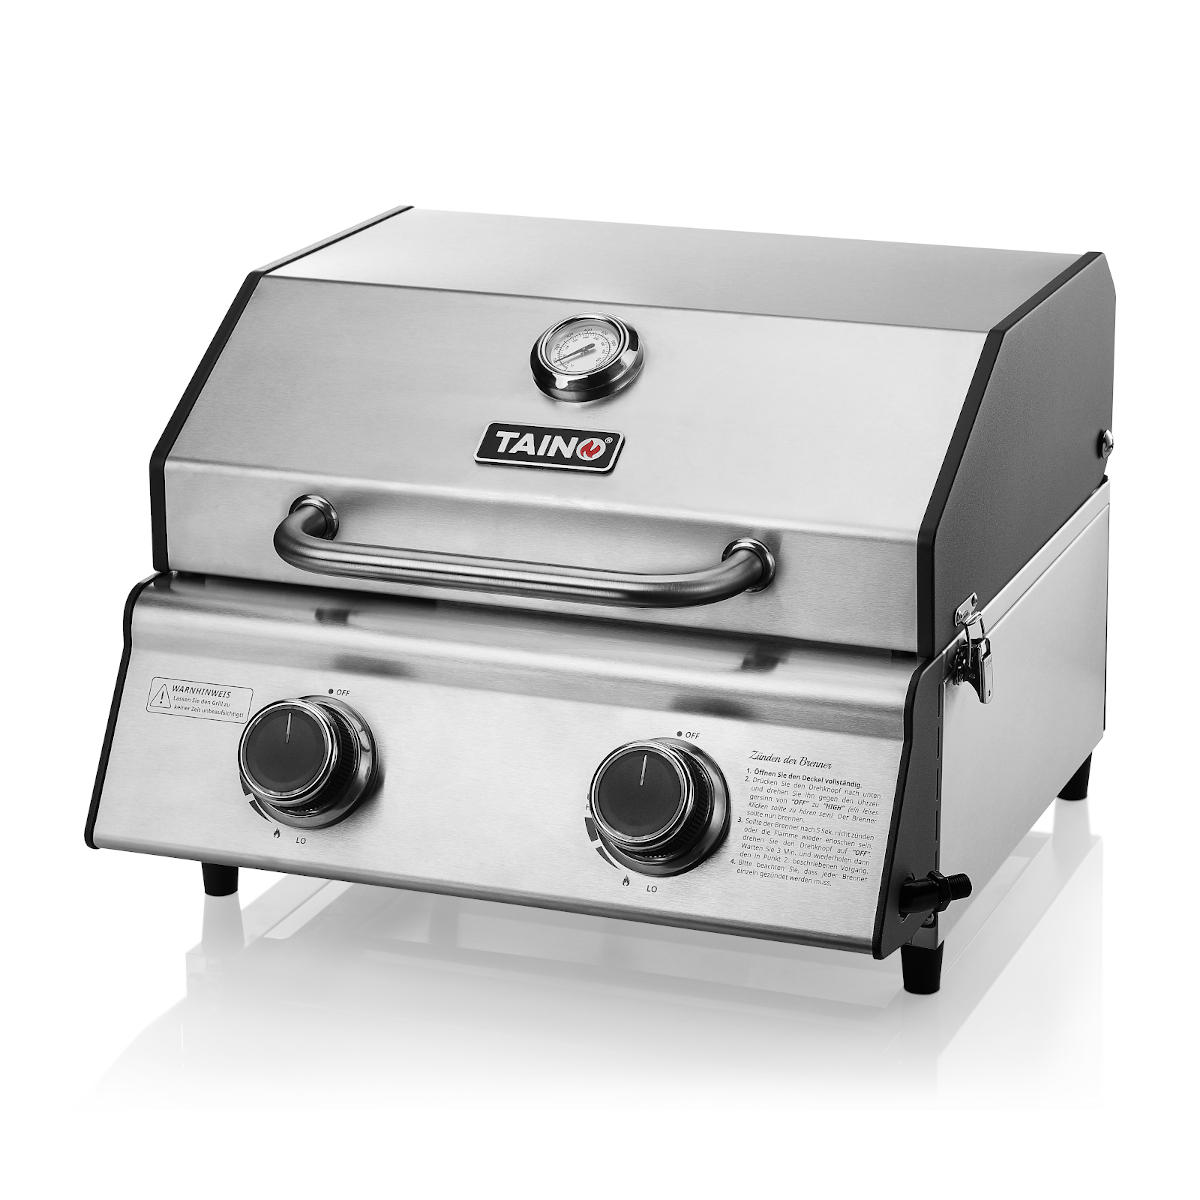 93512 TAINO COMPACT 2.0 S Tischgrill mit 2 Brenner Gasgrill